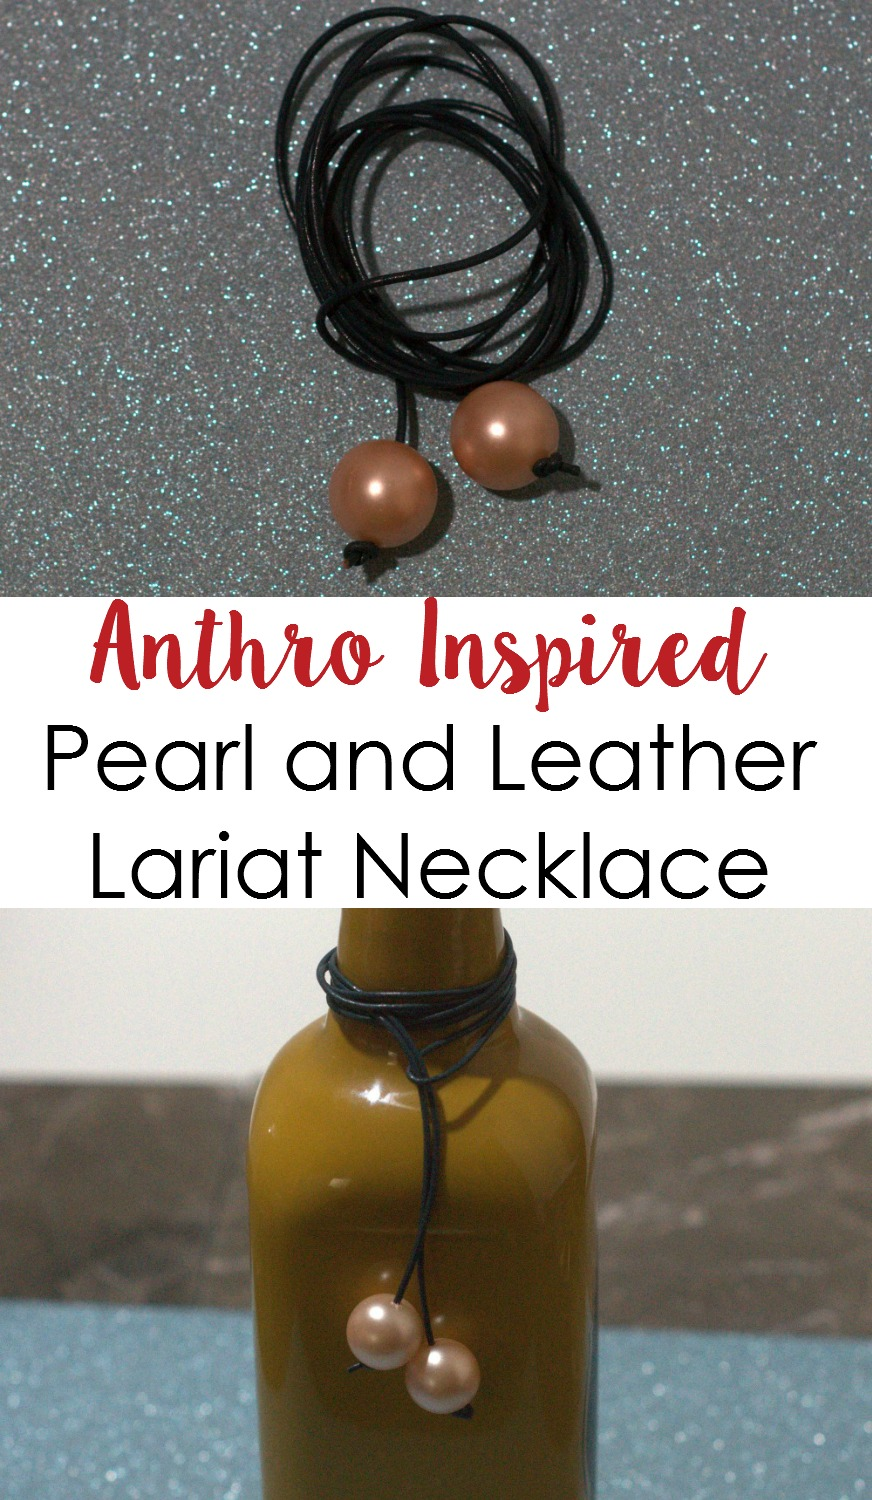 Anthropologie inspired pearl and leather lariat necklace tutorial